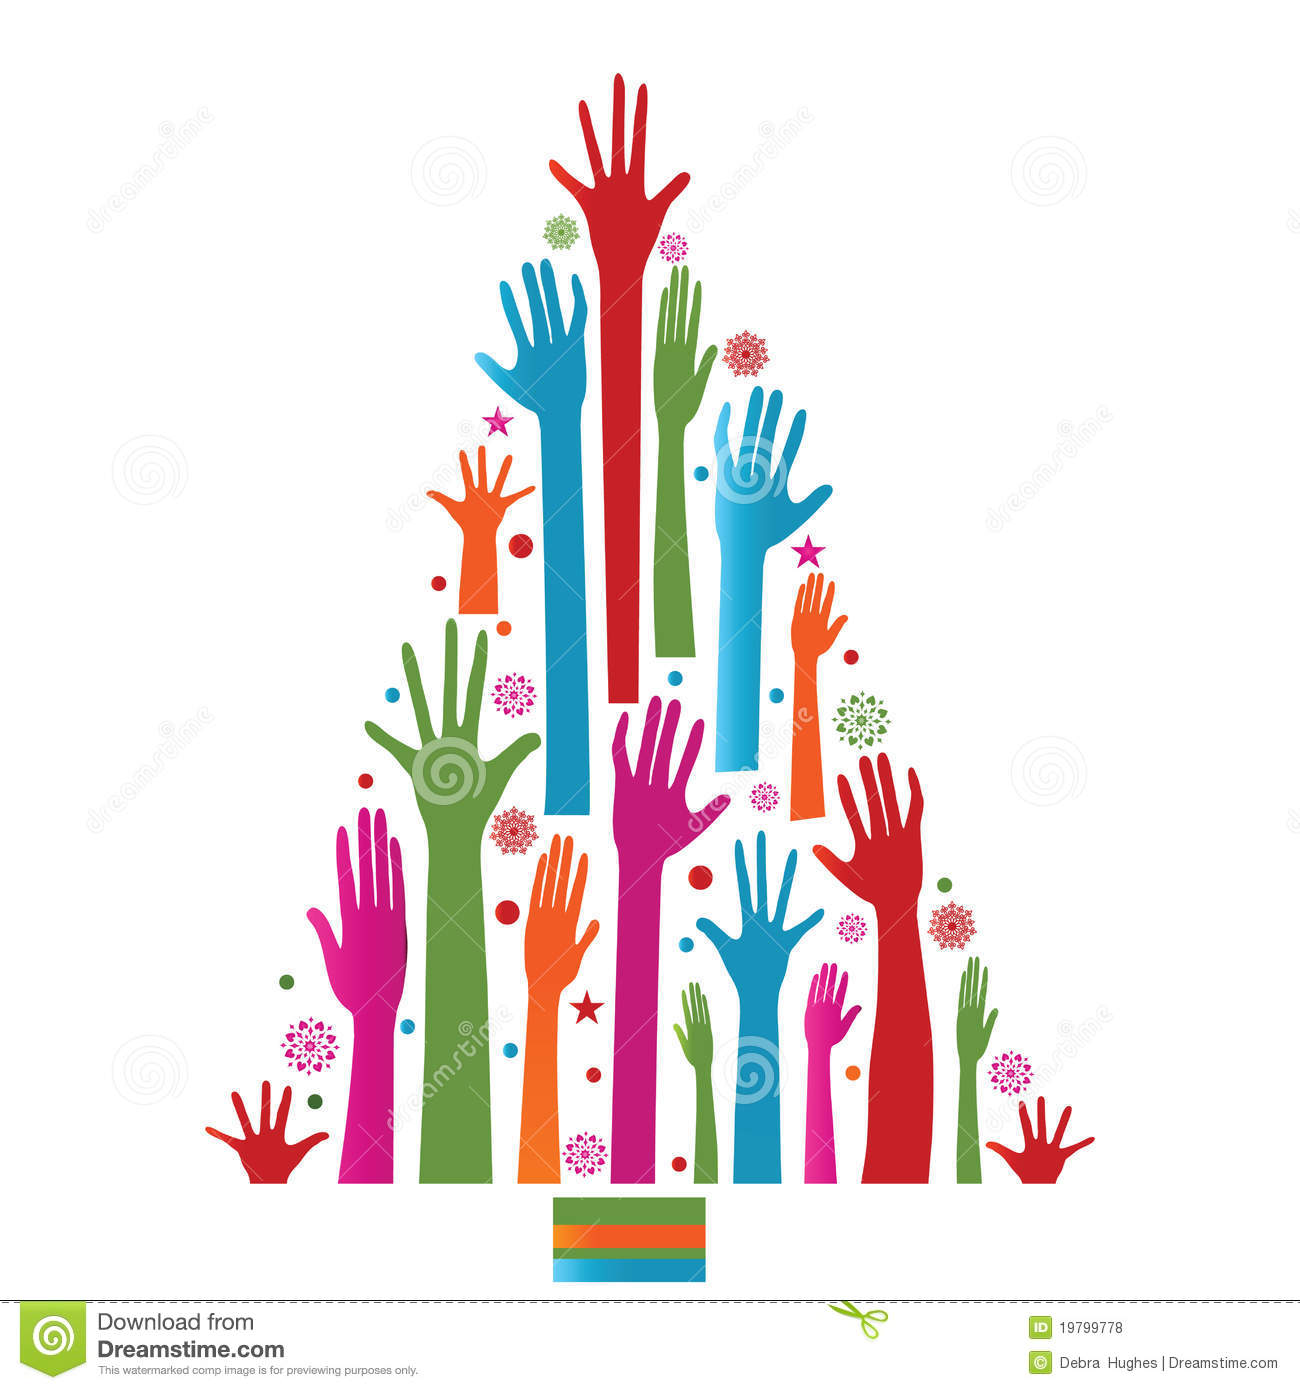 Colorful Christmas Tree Of Hands Royalty Free Stock Photos - Image ...